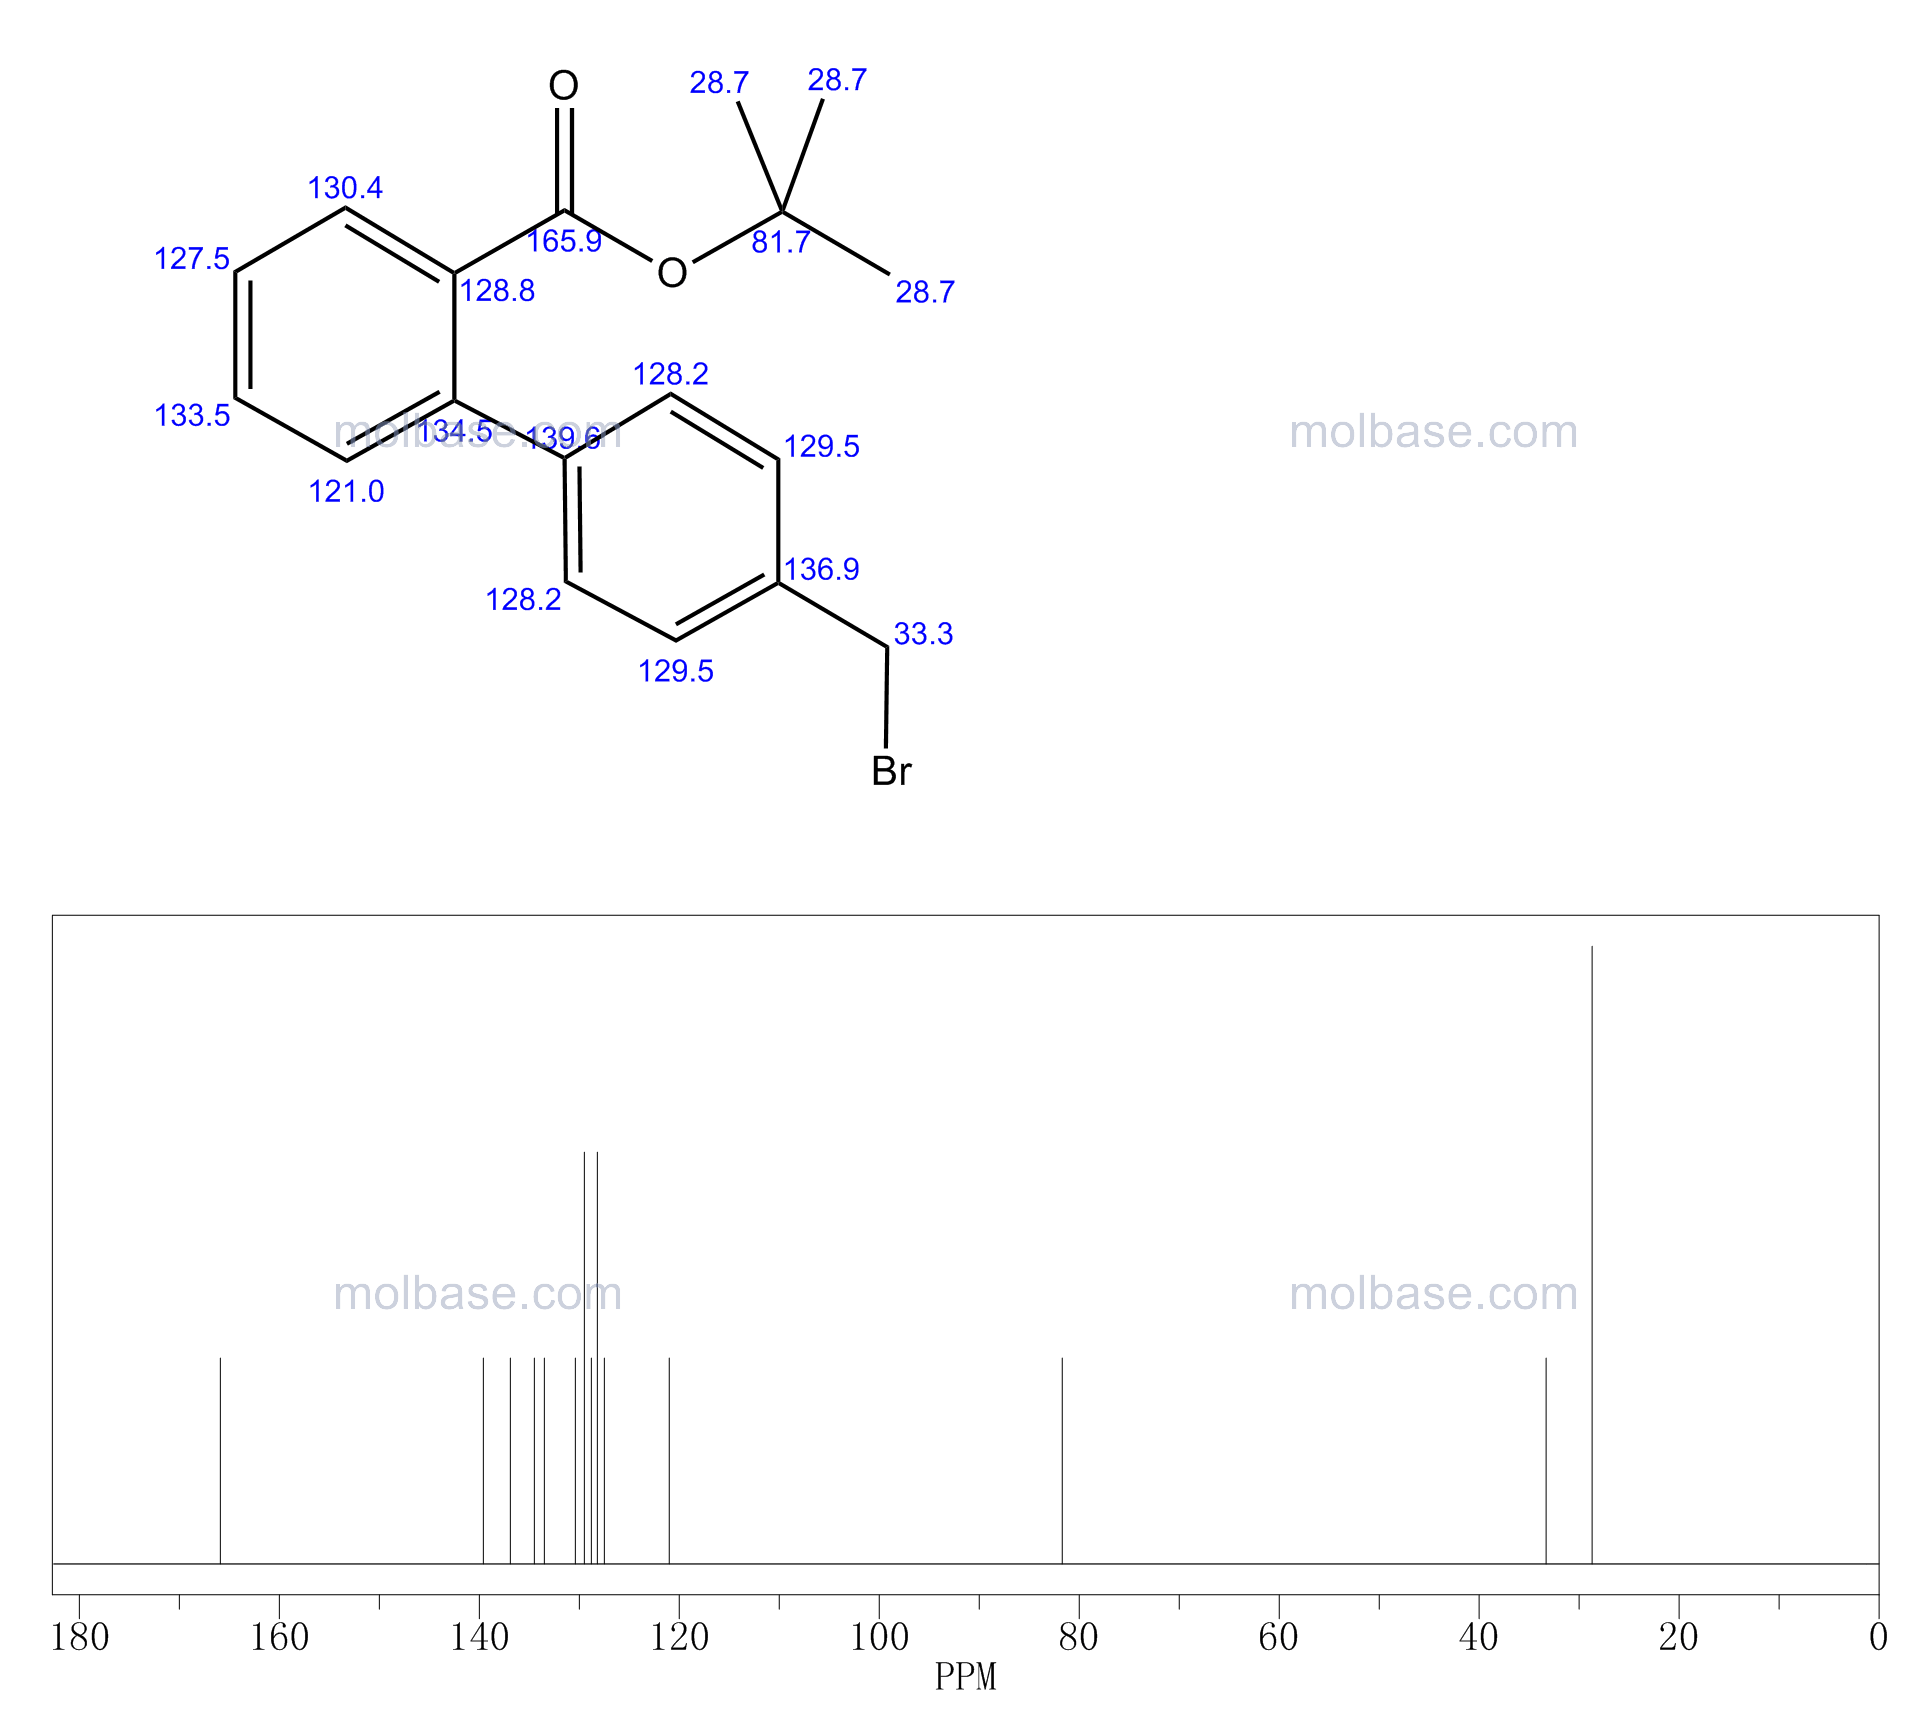 tert-butyl 2-[4-(bromomethyl)phenyl]benzoate NMR spectra analysis, Chemical CAS NO. 114772-40-6 NMR spectral analysis, tert-butyl 2-[4-(bromomethyl)phenyl]benzoate C-NMR spectrum